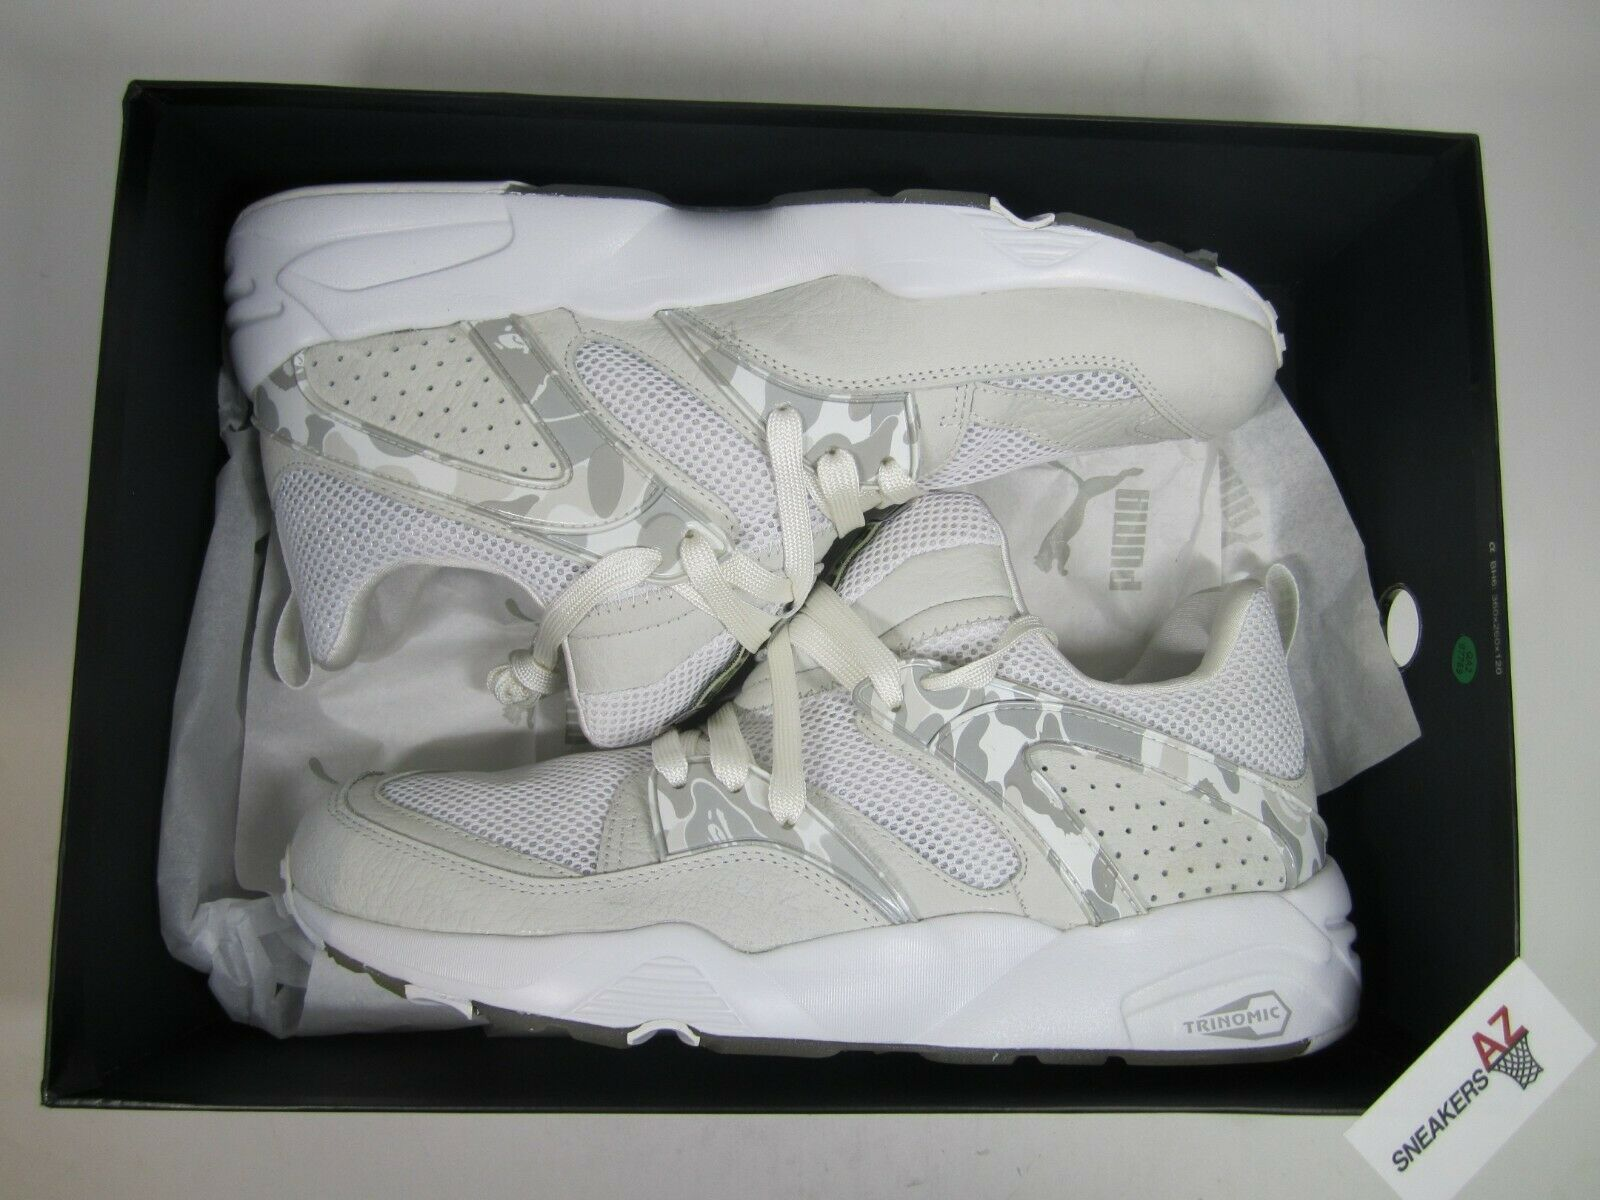 Bape X Puma Blaze Of Glory Camo White DS New Size 12 358844-01 + Receipt